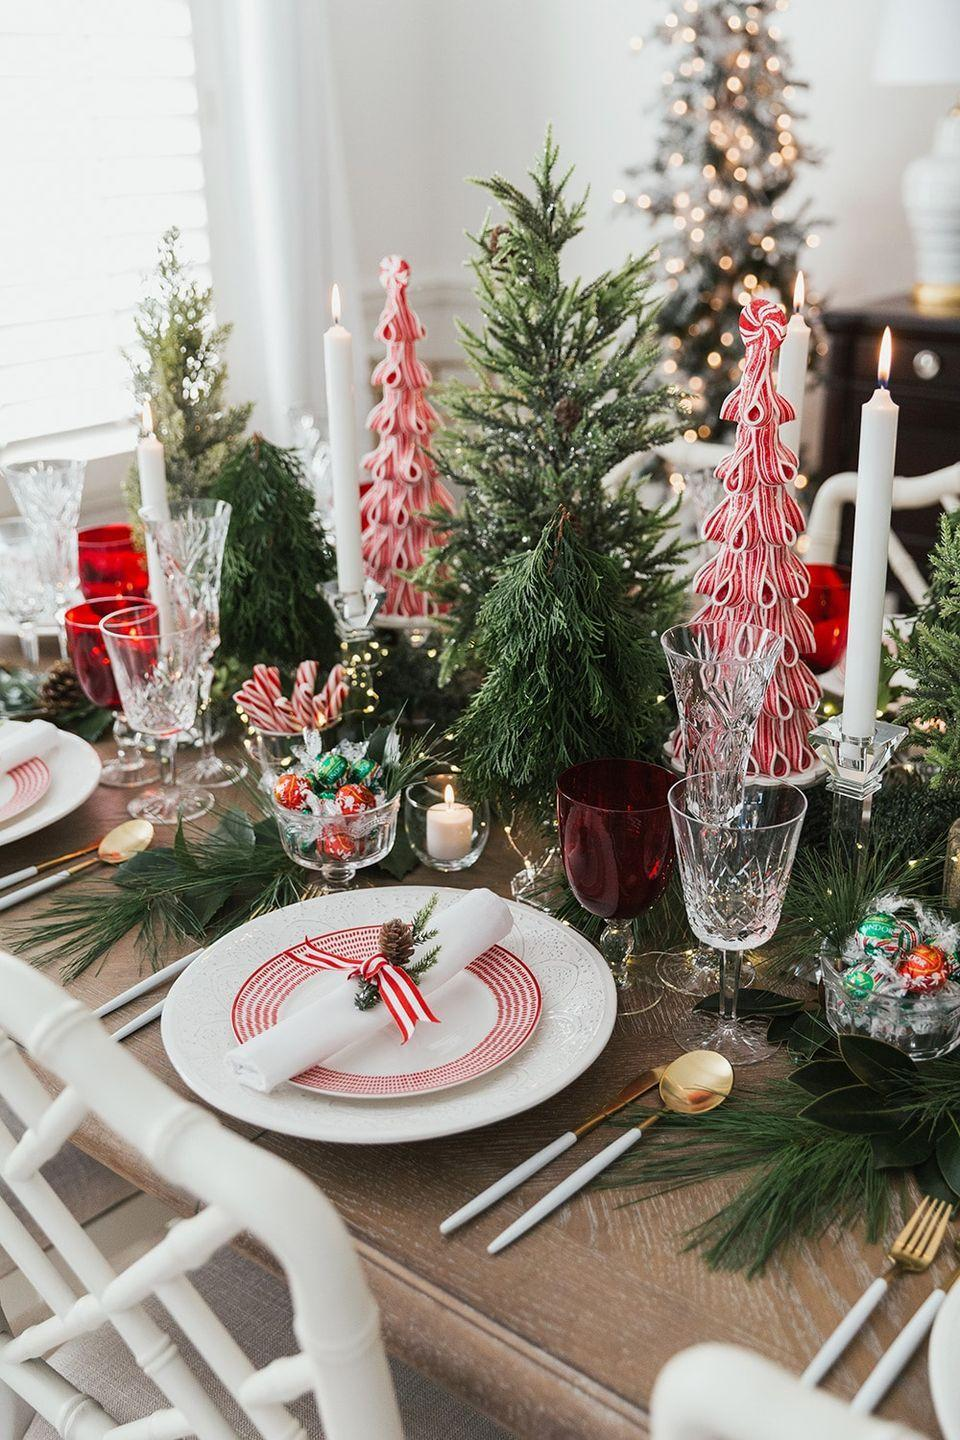 "<p>Believe it or not, you don't have to wait until after dinner to enjoy some dessert. Indulge your sweet tooth by transforming your favorite holiday candy into a centerpiece for your table.</p><p><a href=""https://pizzazzerie.com/featured/host-a-peppermint-holiday-dinner-party/"" rel=""nofollow noopener"" target=""_blank"" data-ylk=""slk:Via Pizzazzerie"" class=""link rapid-noclick-resp""><em>Via Pizzazzerie</em></a></p>"